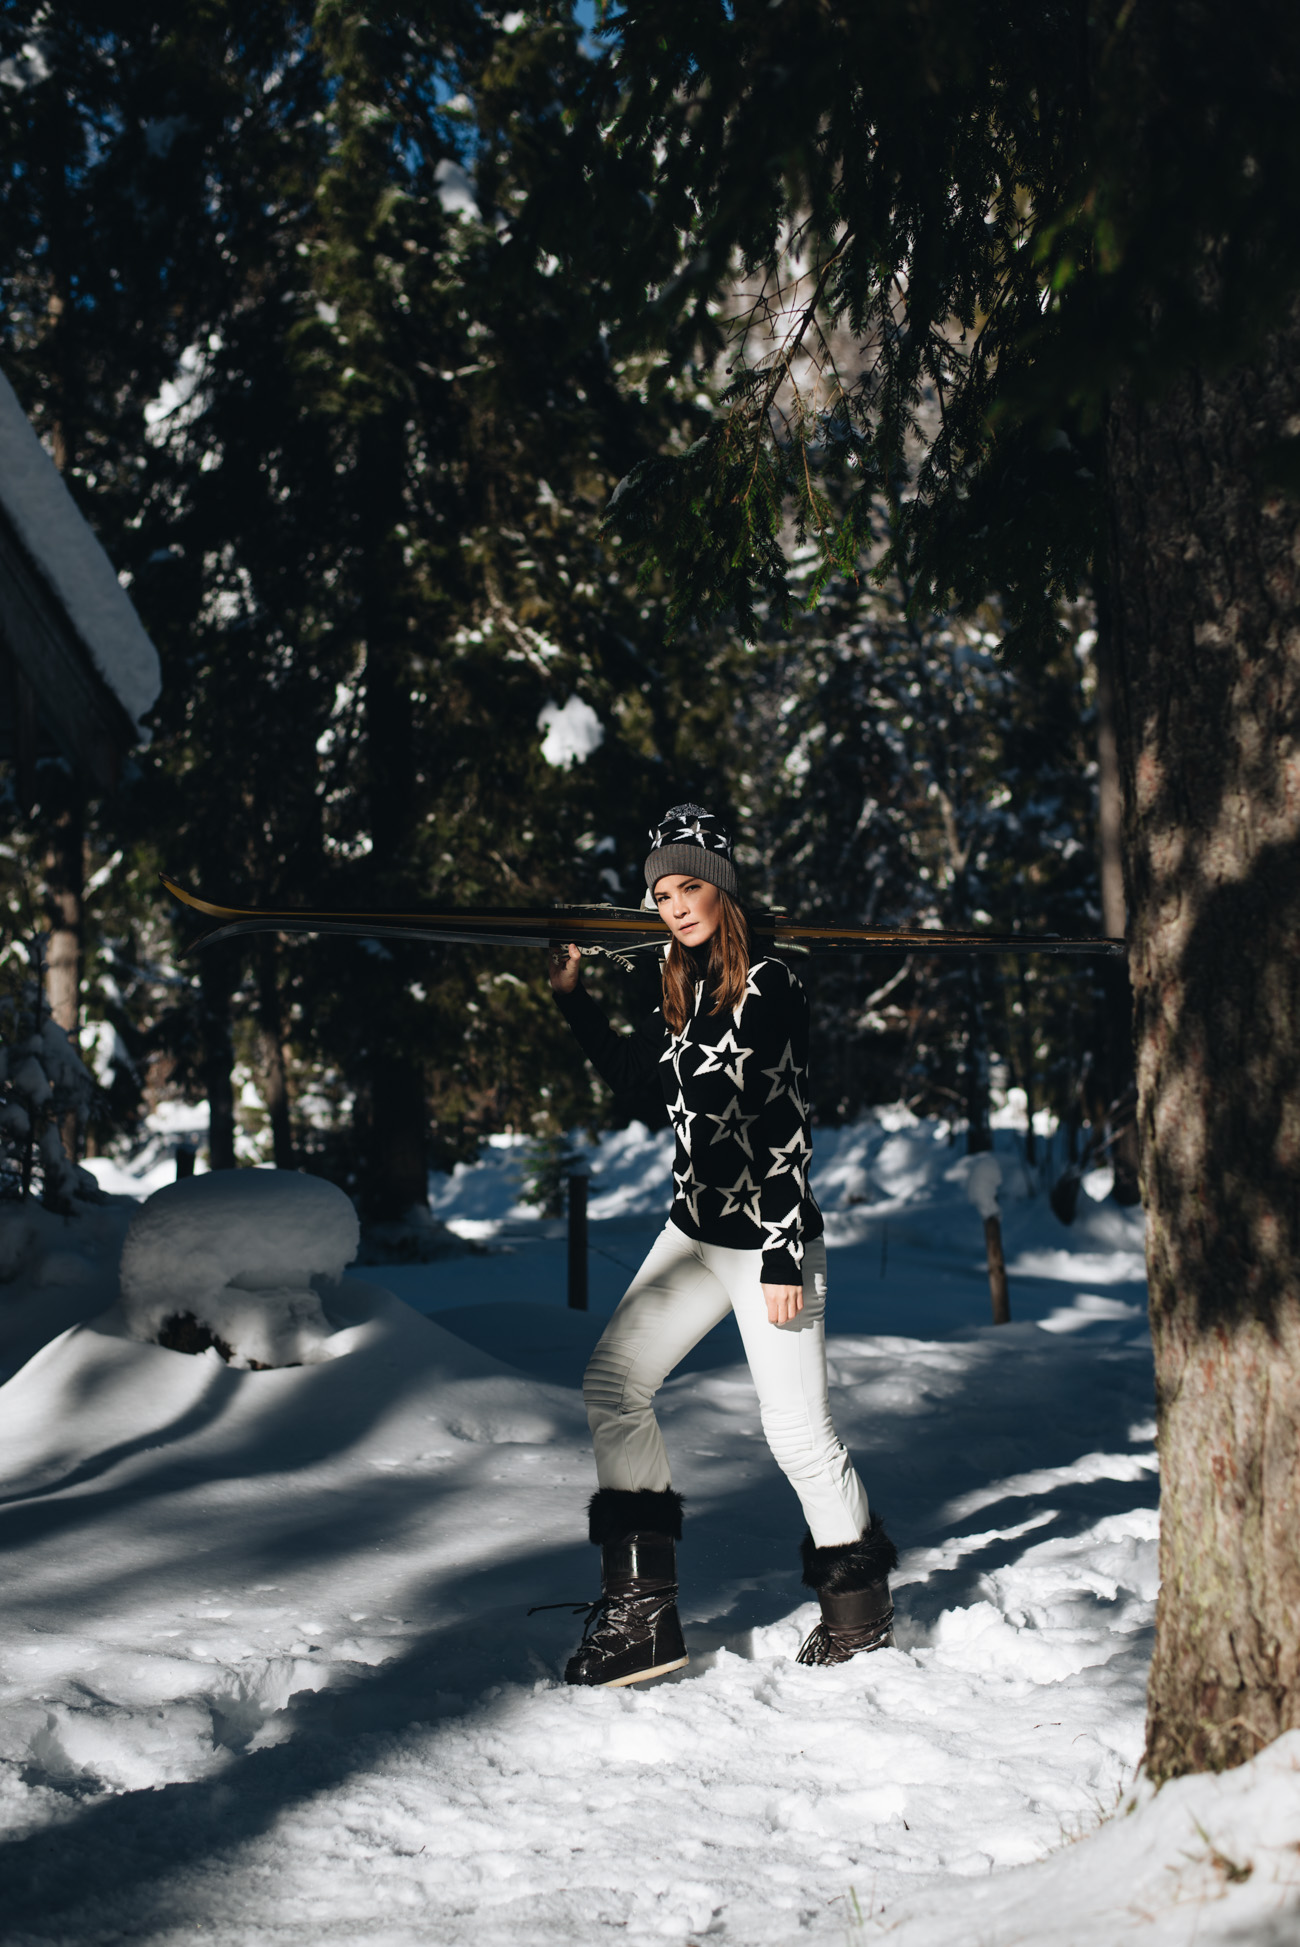 Winter-fotoshooting-Schnee-Fashion-Editorial-Mytheresa-Ski-Saison-Style-fashion-lifestyle-influencer-germay-nina-schwichtenberg-fashiioncarpet-modebloggerin-fashion-bloggerin-deutschland-München